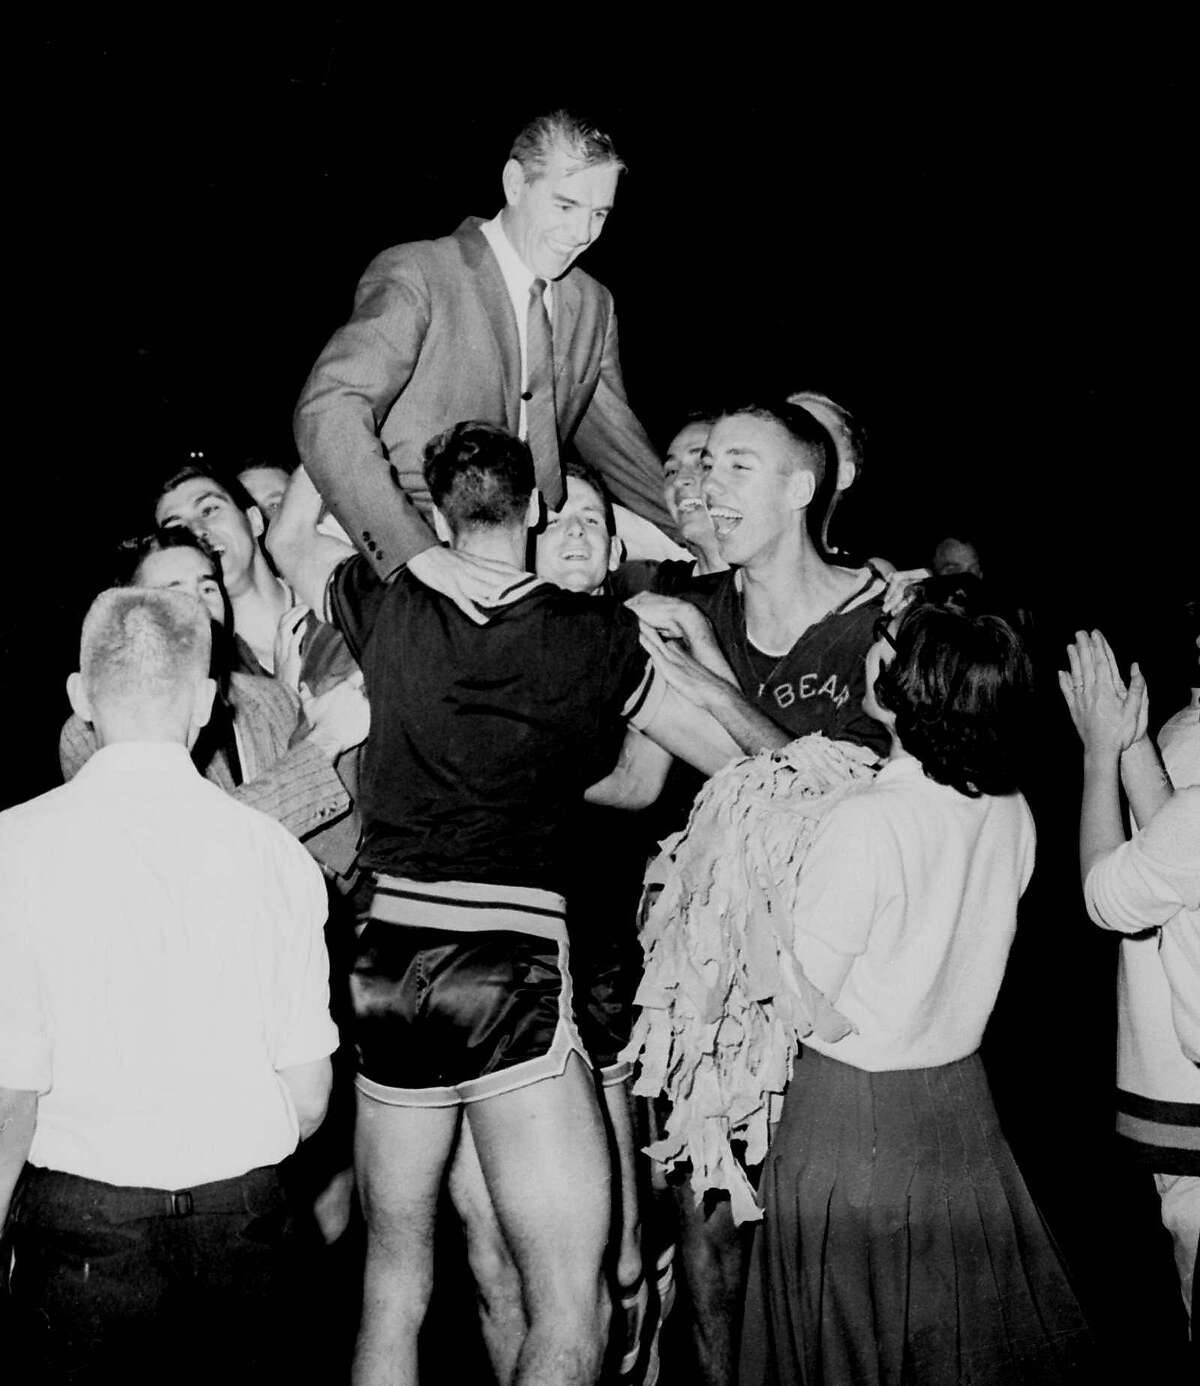 A smiling coach Pete Newell is hoisted to shoulders of members of the California Bears basketball team March 21, 1959 after they won a close, 71-70 decision over West Virginia at Louisville,Ky. to became NCAA champs.